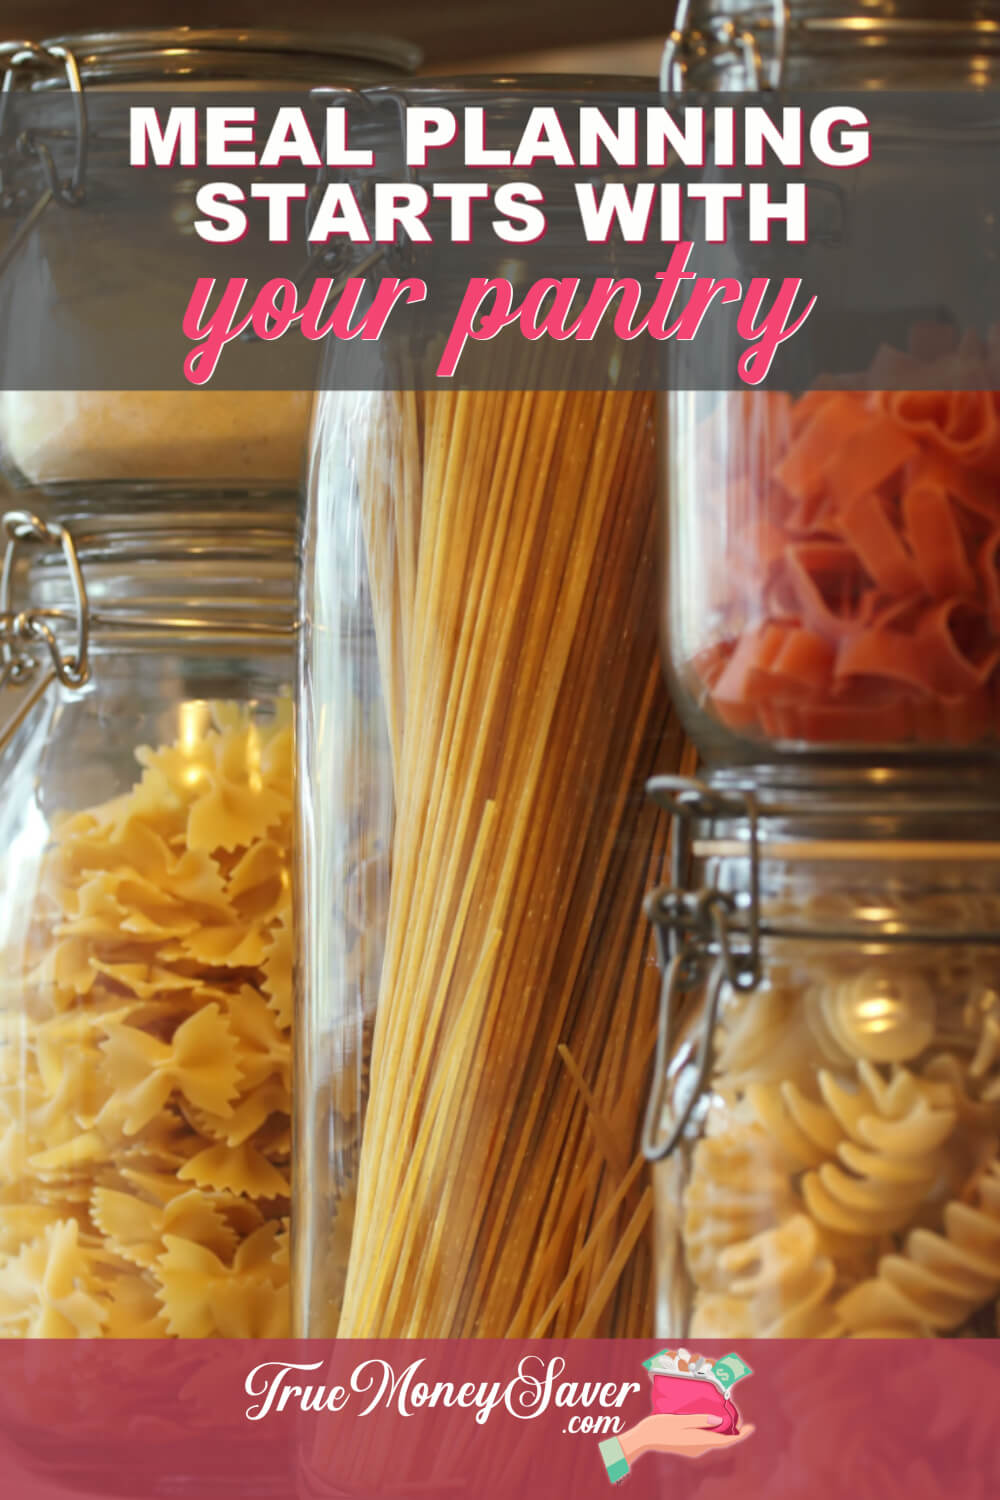 Do you know how to meal plan from your pantry? Check out these pantry meal planning ideas to save money and stop wasting food! Start your pantry meal planning here!  #truemoneysaver #debtfree #savingmoney #meal #mealplanning #mealprep #mealprepping #mealprepsunday #mealplan #mealprepideas #pantry #pantryorganization #pantrychallenge